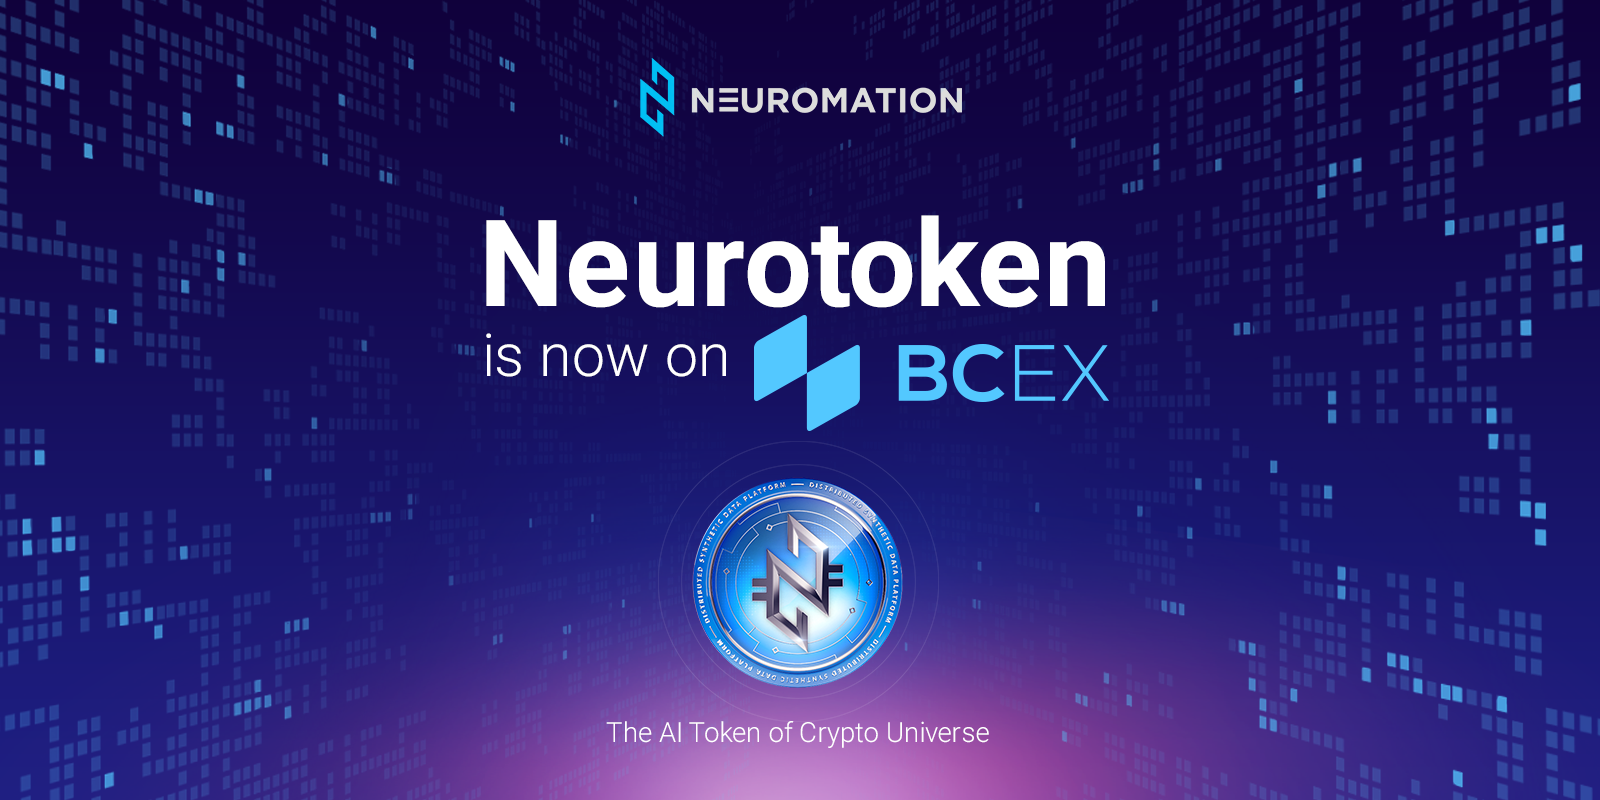 Neuromation's NeuroToken (NTK) Secures Listing on the BCEX Exchange